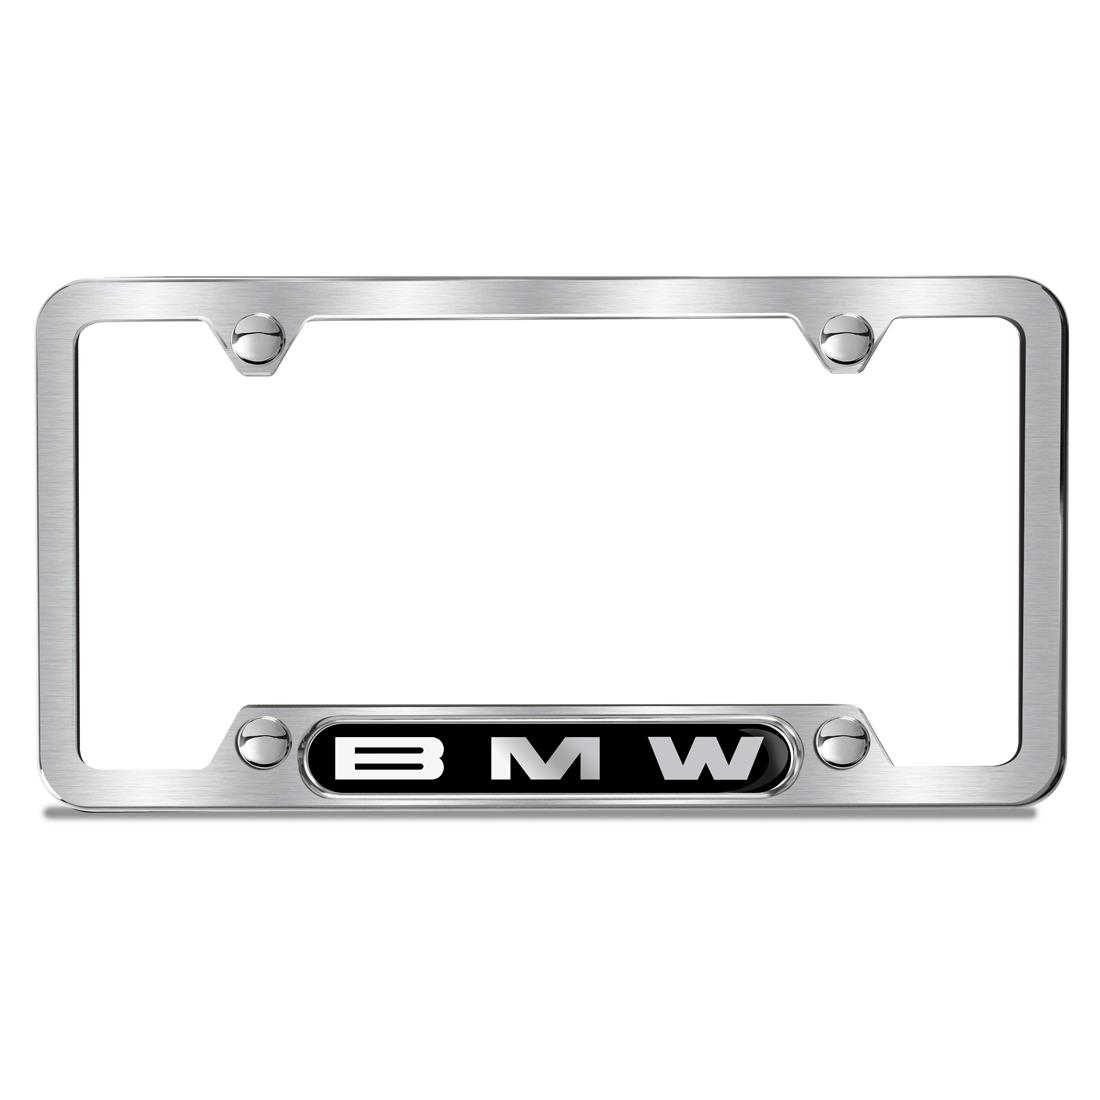 Brushed BMW license plate frame